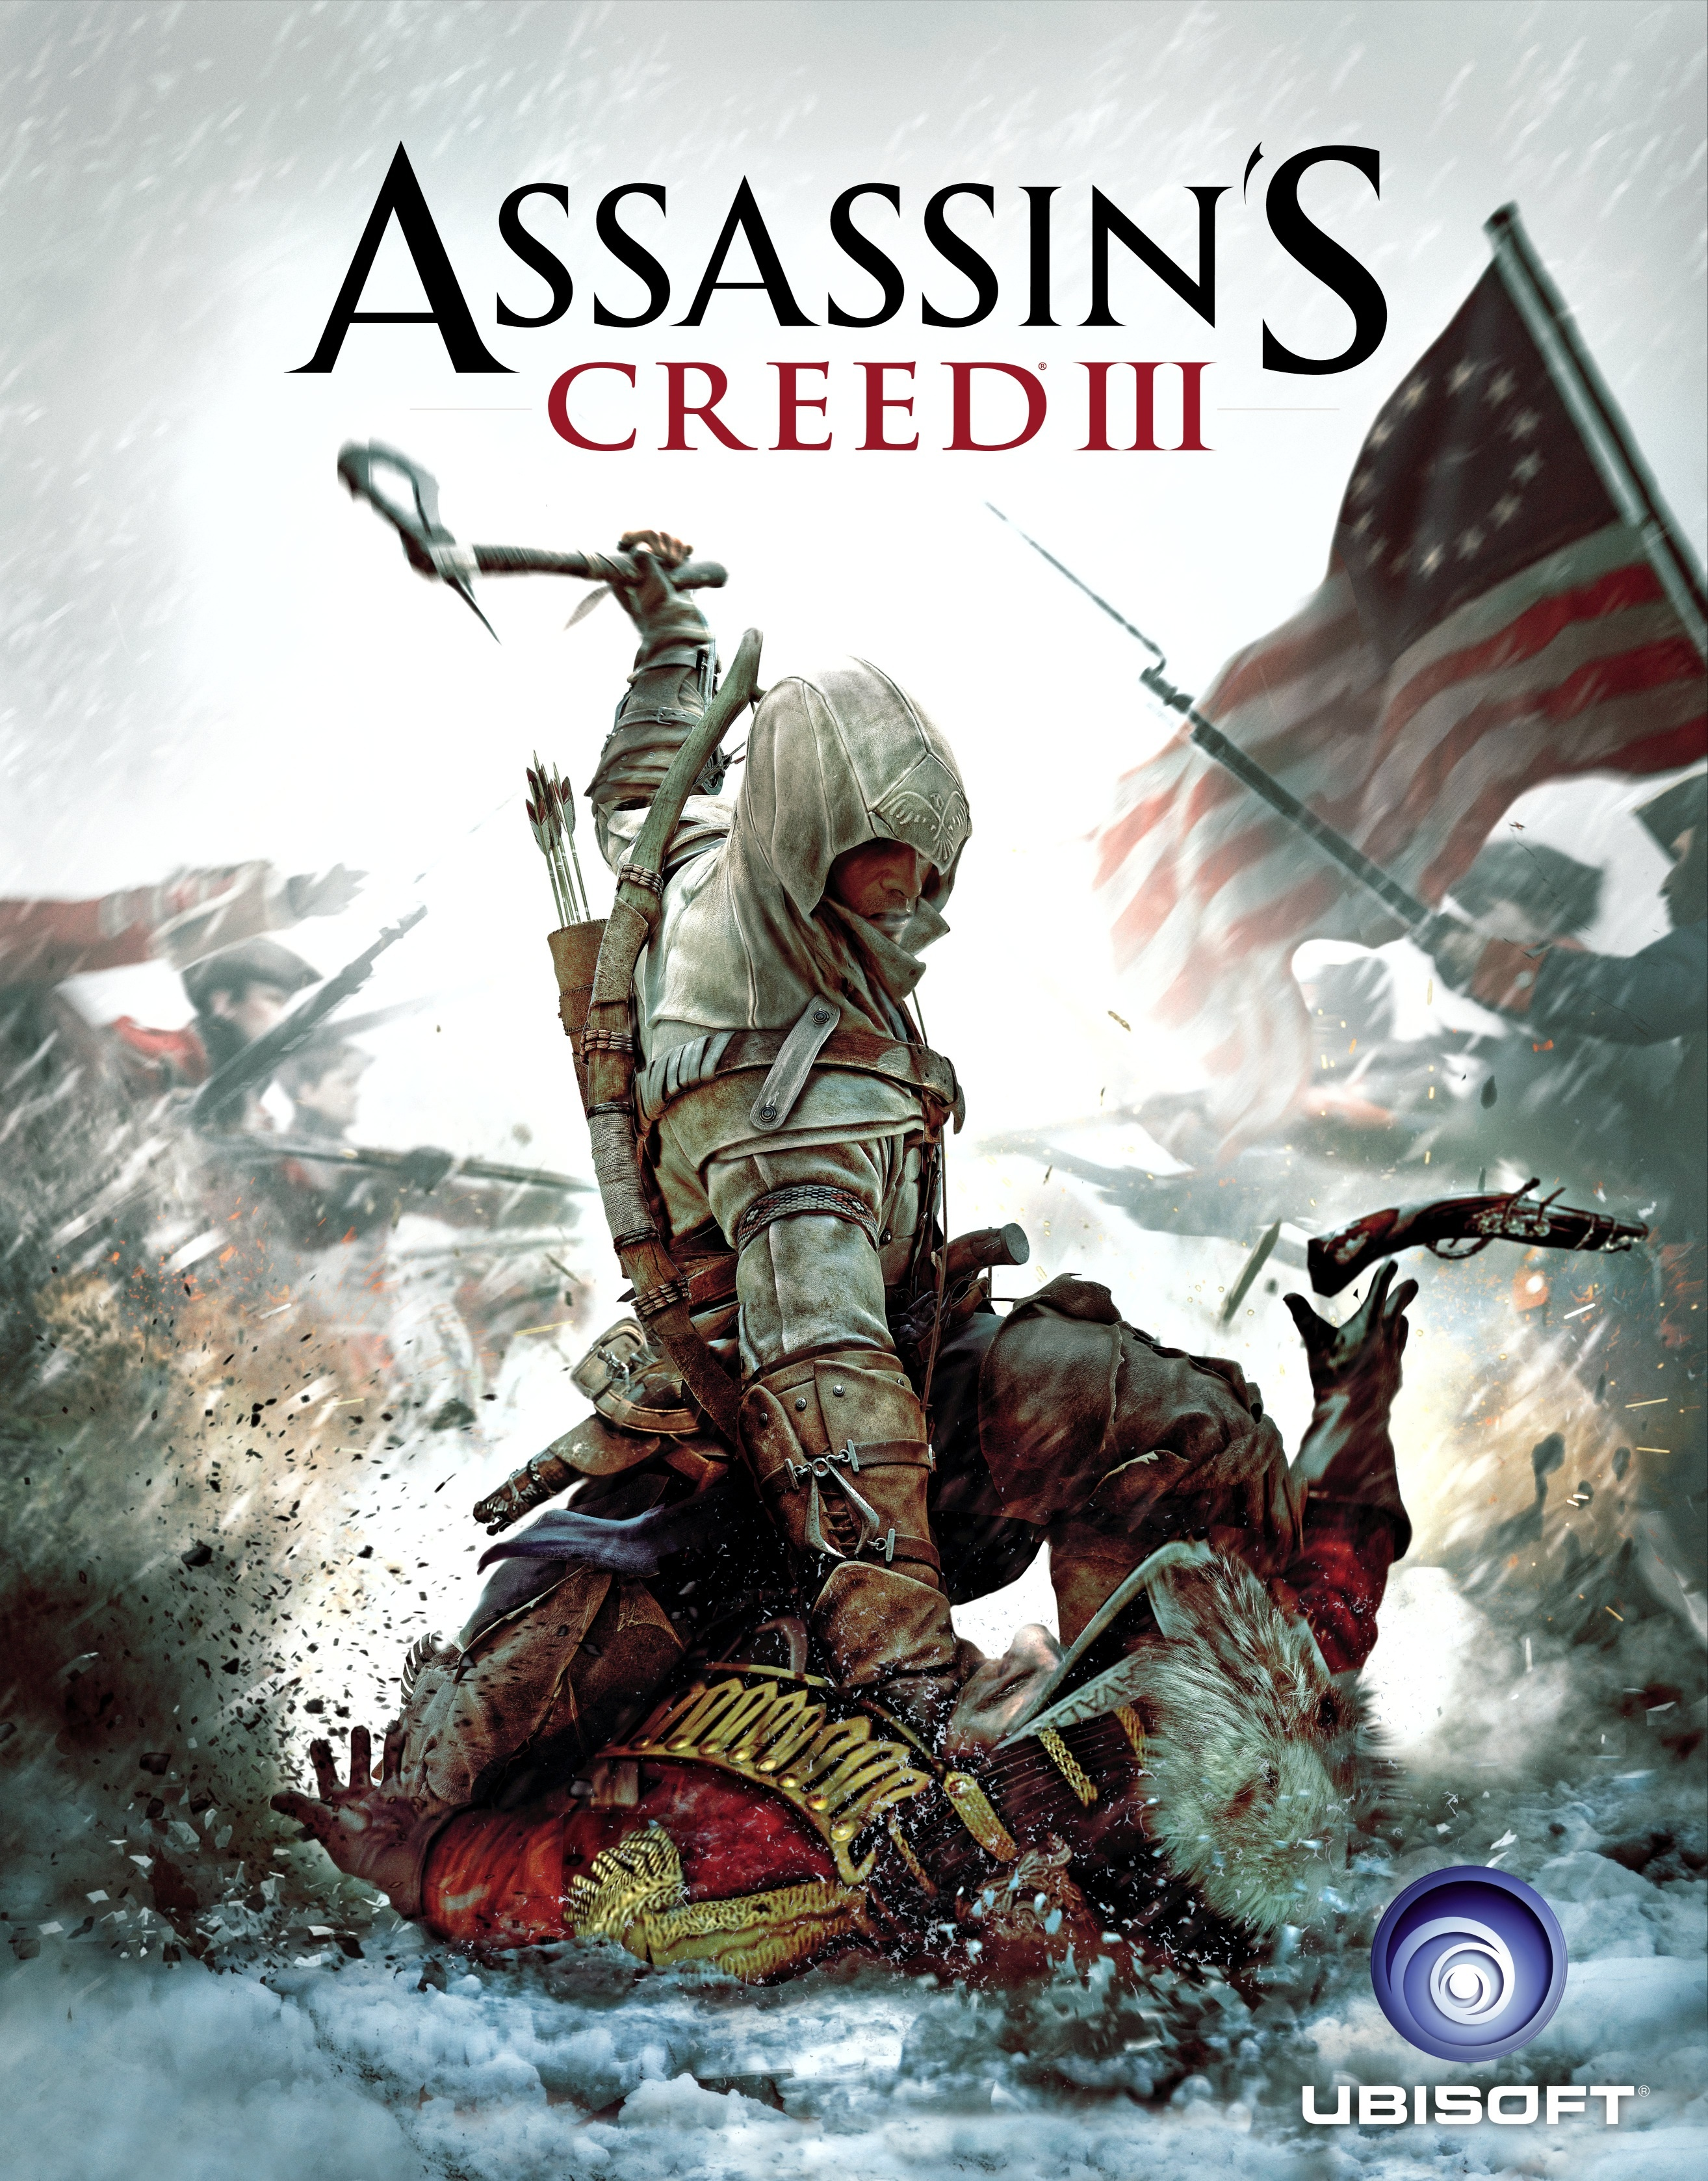 Assassin's Creed III – Video Game Review   Bane of Kings' Writing Blog